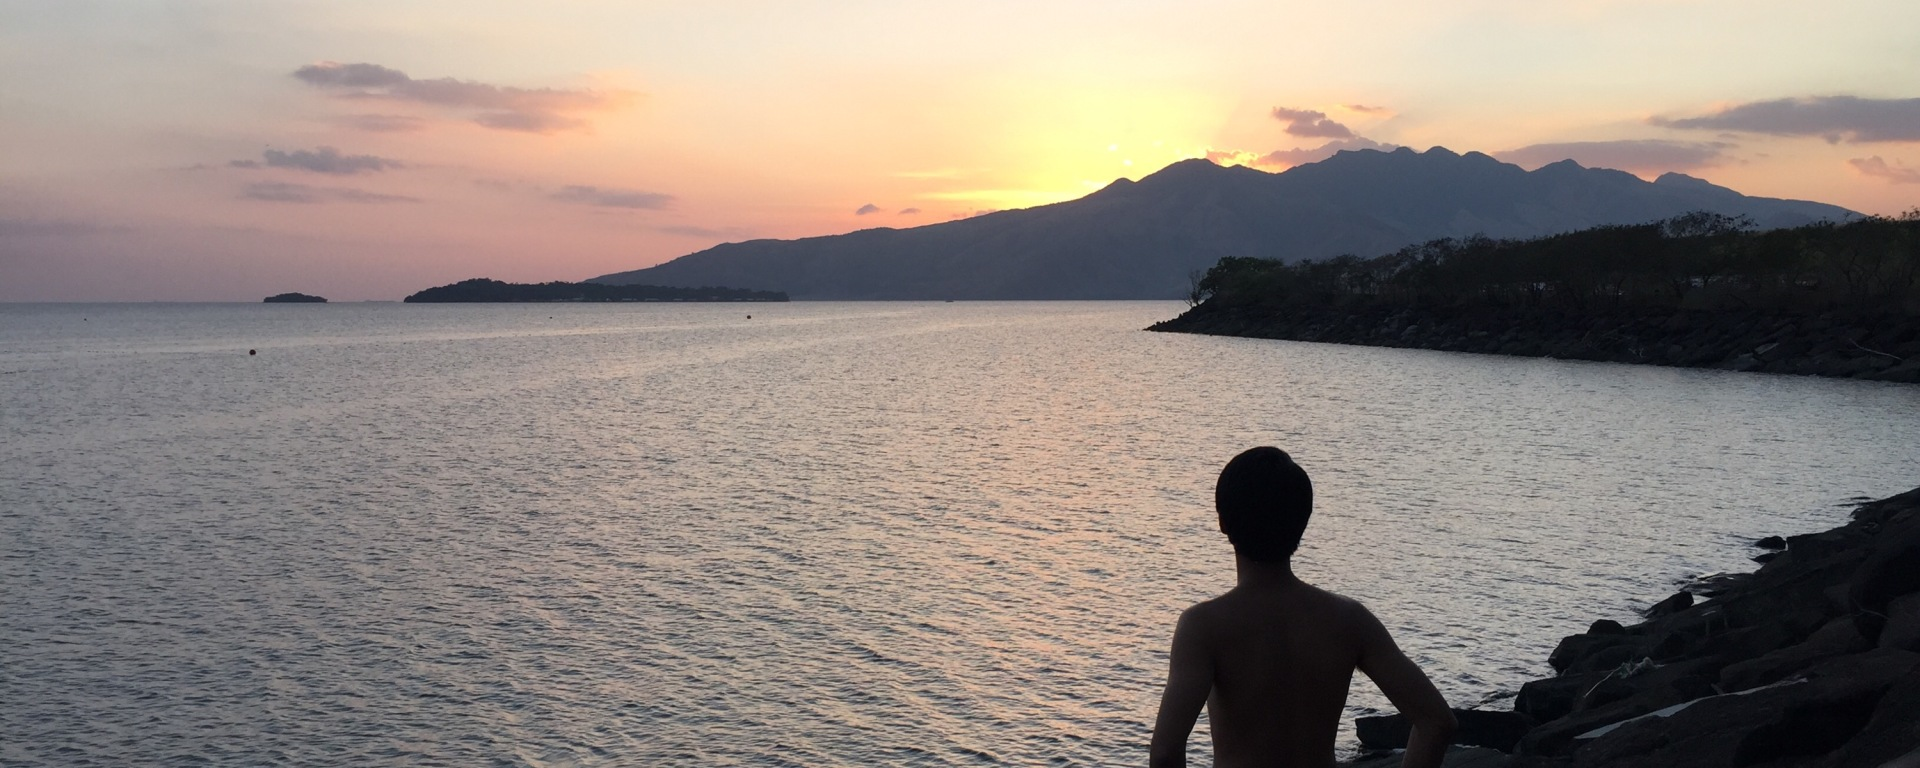 Silhouette of the journeying engineer in Subic Bay